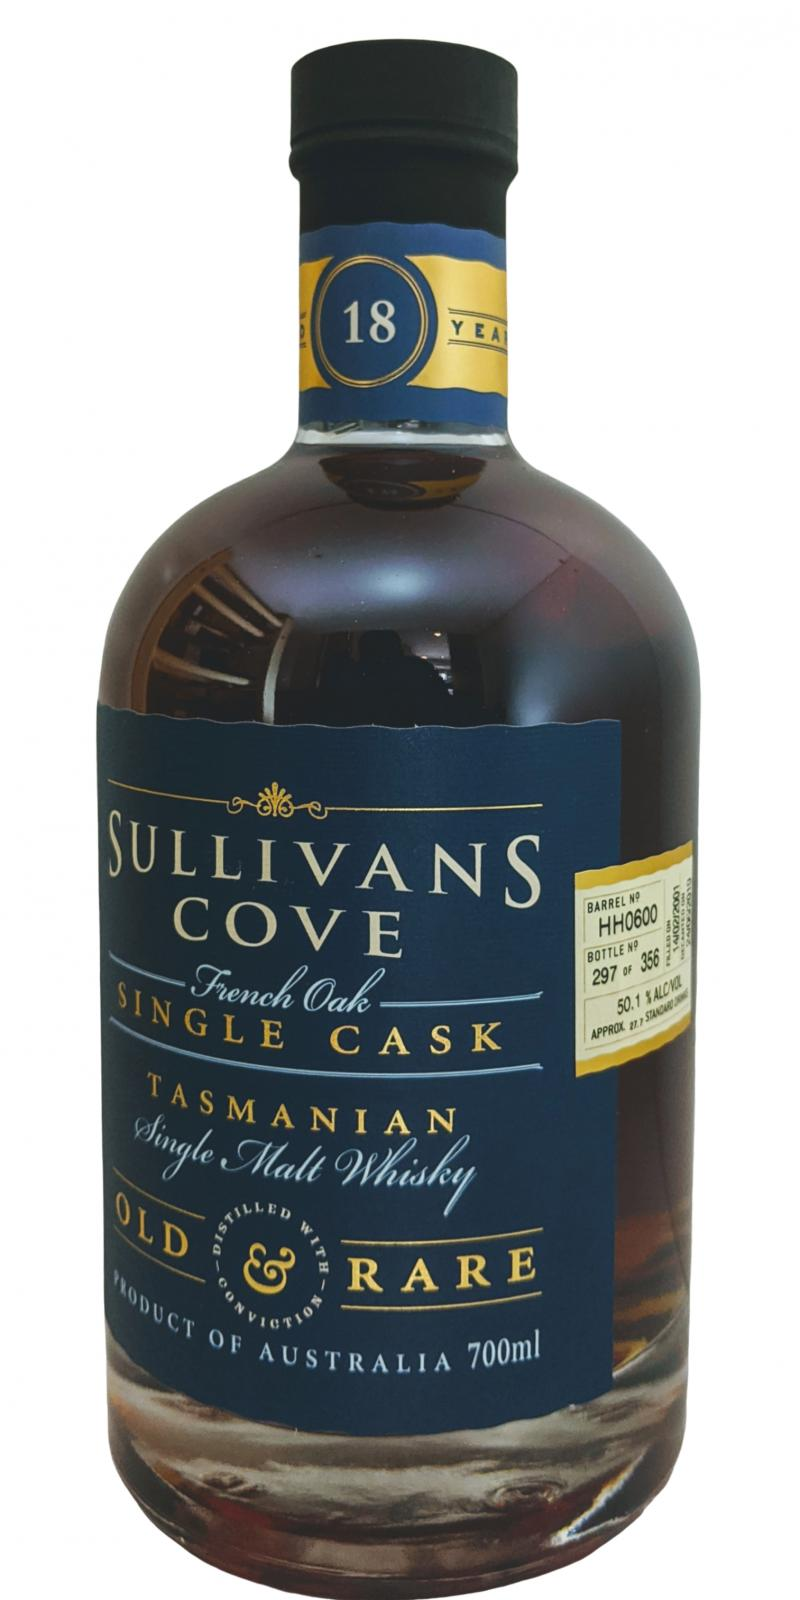 Sullivans Cove 18-year-old